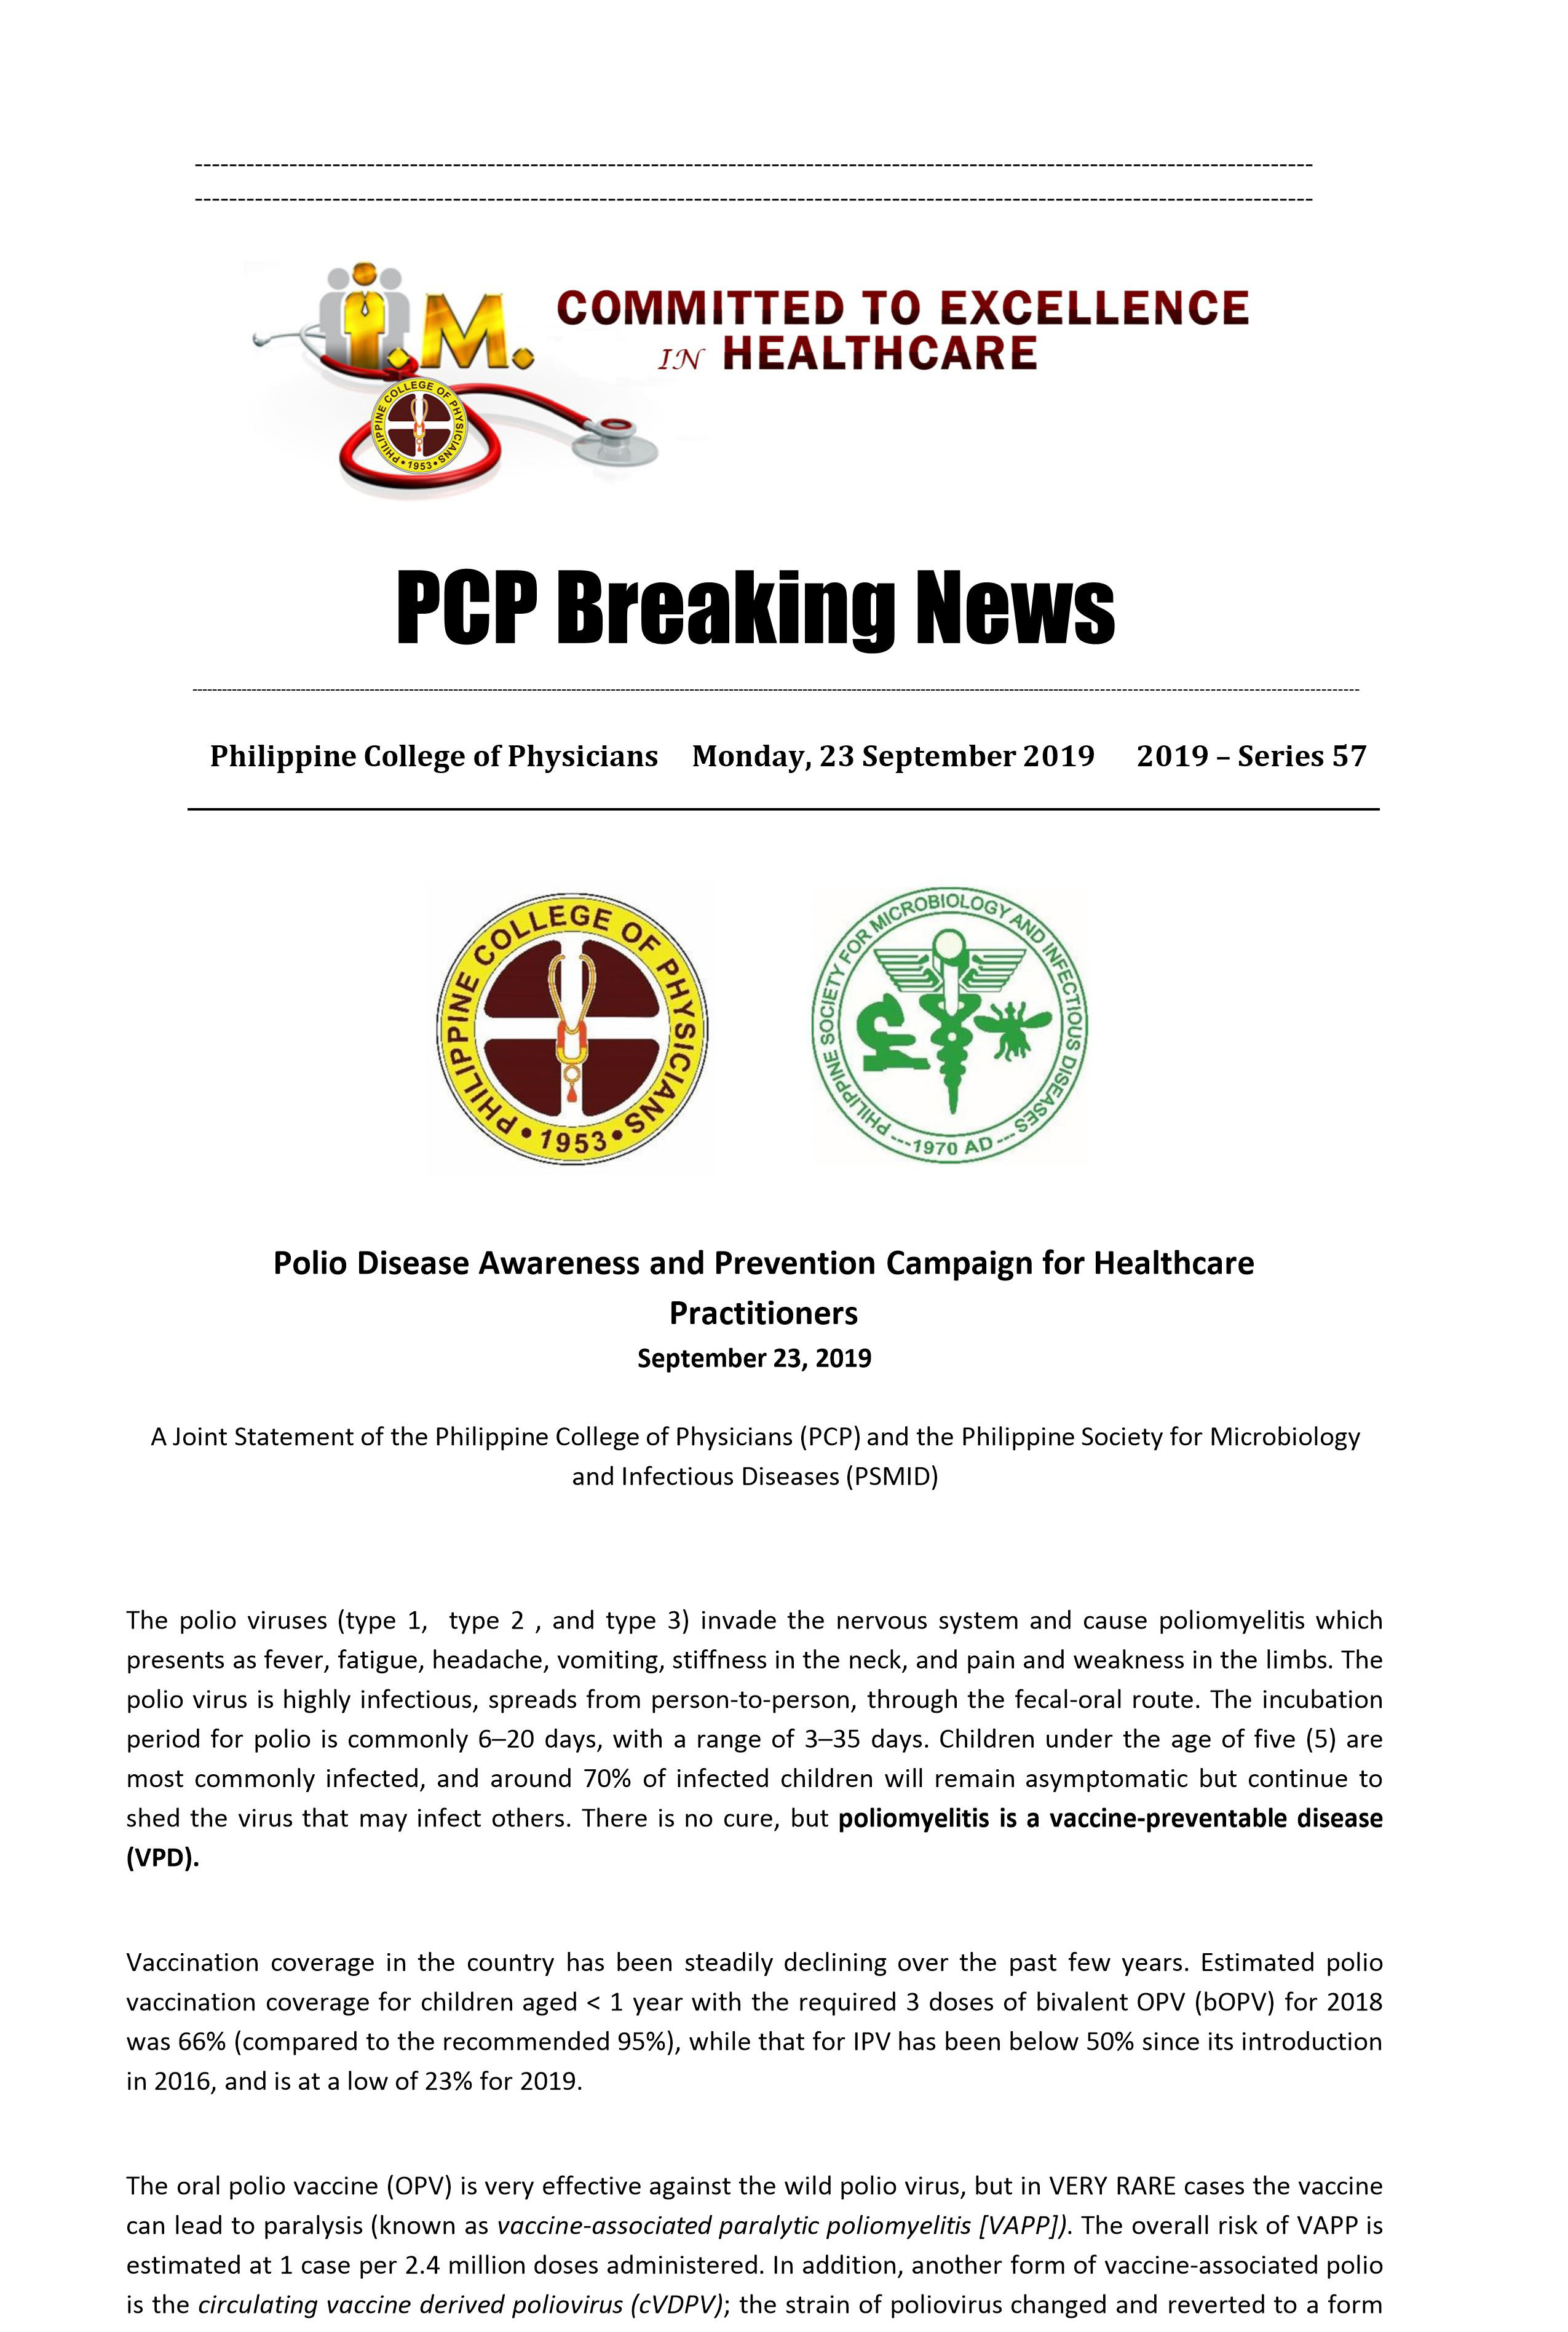 57th pcp breaking news final 1